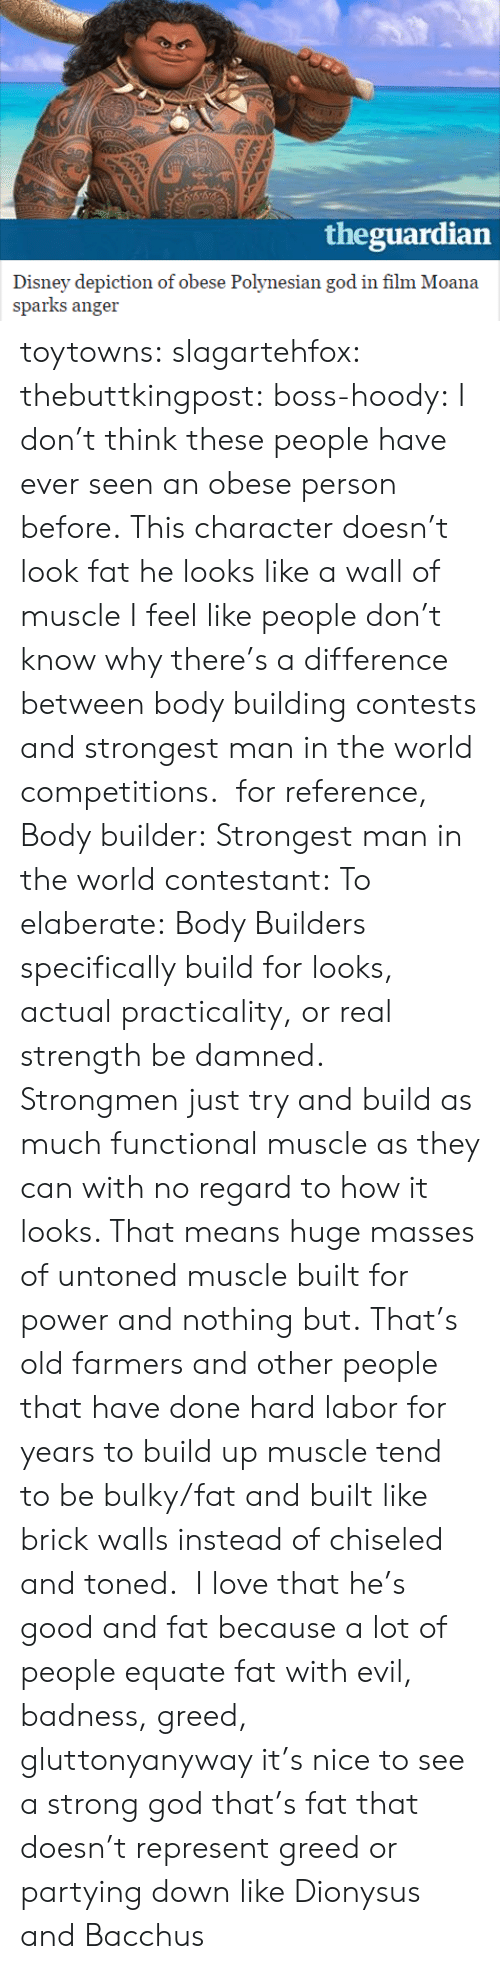 Body Building: theguardian  Disney depiction of obese Polynesian god in flm Moana  sparks anger toytowns:  slagartehfox:  thebuttkingpost:  boss-hoody:  I don't think these people have ever seen an obese person before. This character doesn't look fat he looks like a wall of muscle  I feel like people don't know why there's a difference between body building contests and strongest man in the world competitions. for reference, Body builder: Strongest man in the world contestant:  To elaberate: Body Builders specifically build for looks, actual practicality, or real strength be damned.  Strongmen just try and build as much functional muscle as they can with no regard to how it looks. That means huge masses of untoned muscle built for power and nothing but. That's old farmers and other people that have done hard labor for years to build up muscle tend to be bulky/fat and built like brick walls instead of chiseled and toned.  I love that he's good and fat because a lot of people equate fat with evil, badness, greed, gluttonyanyway it's nice to see a strong god that's fat that doesn't represent greed or partying down like Dionysus and Bacchus